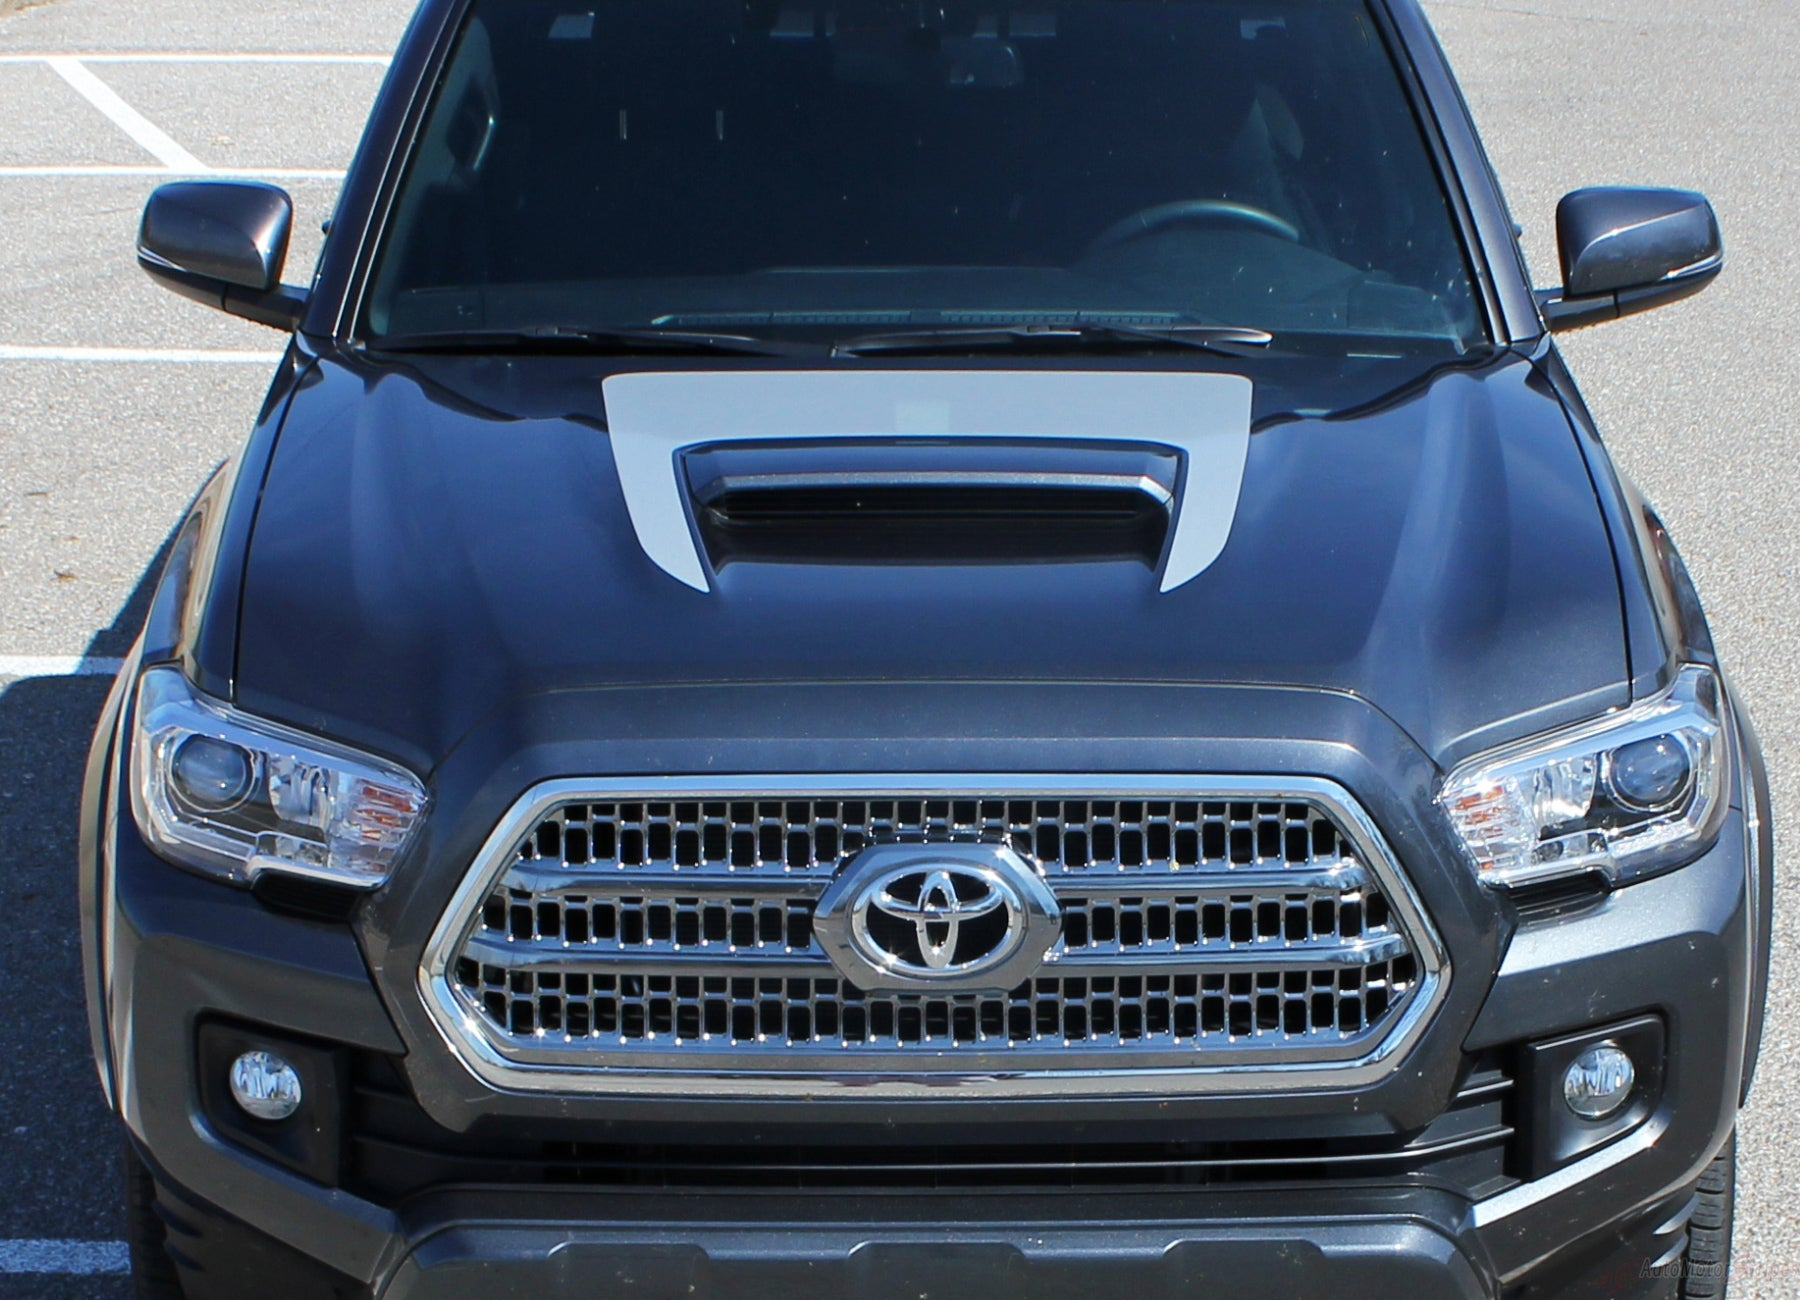 2015 2021 Toyota Tacoma Sport Hood Decal Trd Sport Pro Graphic Stripe Auto Motor Stripes Decals Vinyl Graphics And 3m Striping Kits